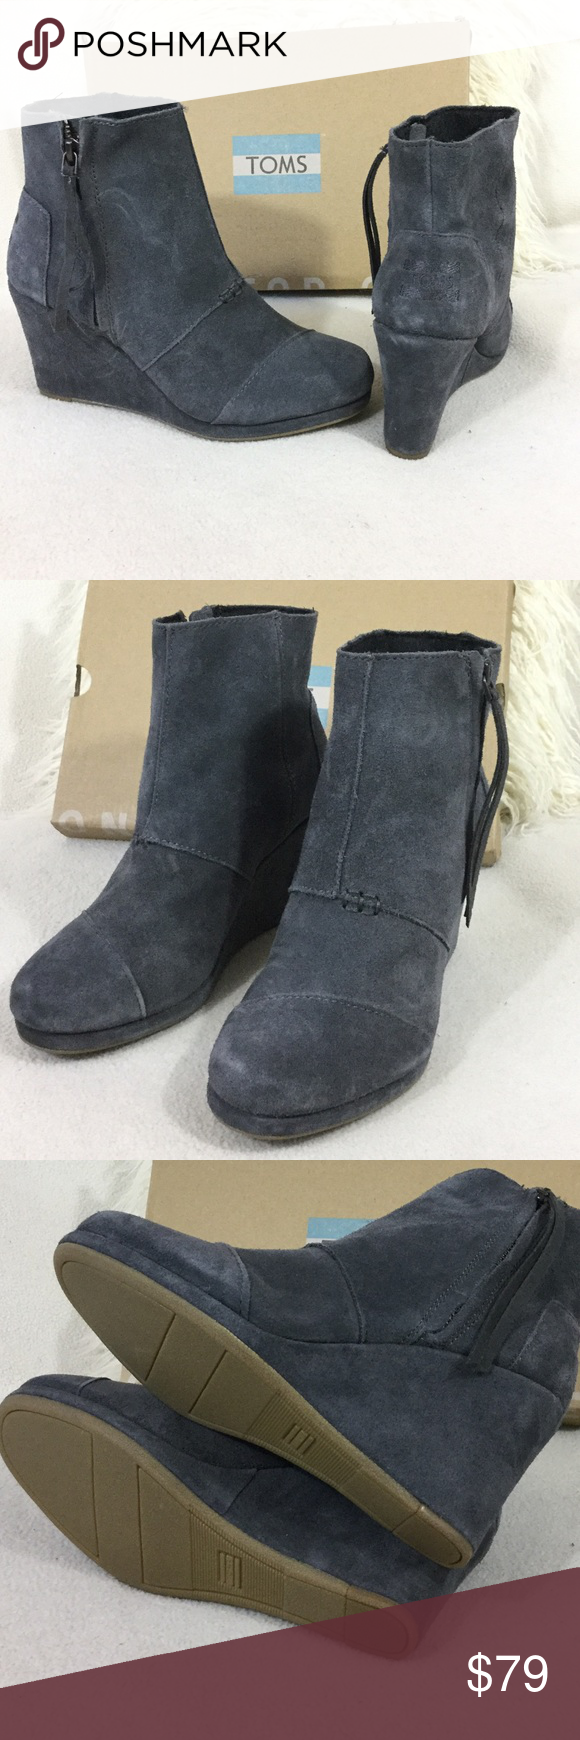 6632d55eb53e TOMS BRAND NEW grey suede wedge ankle boot TOMS BRAND NEW grey suede wedge  ankle boot